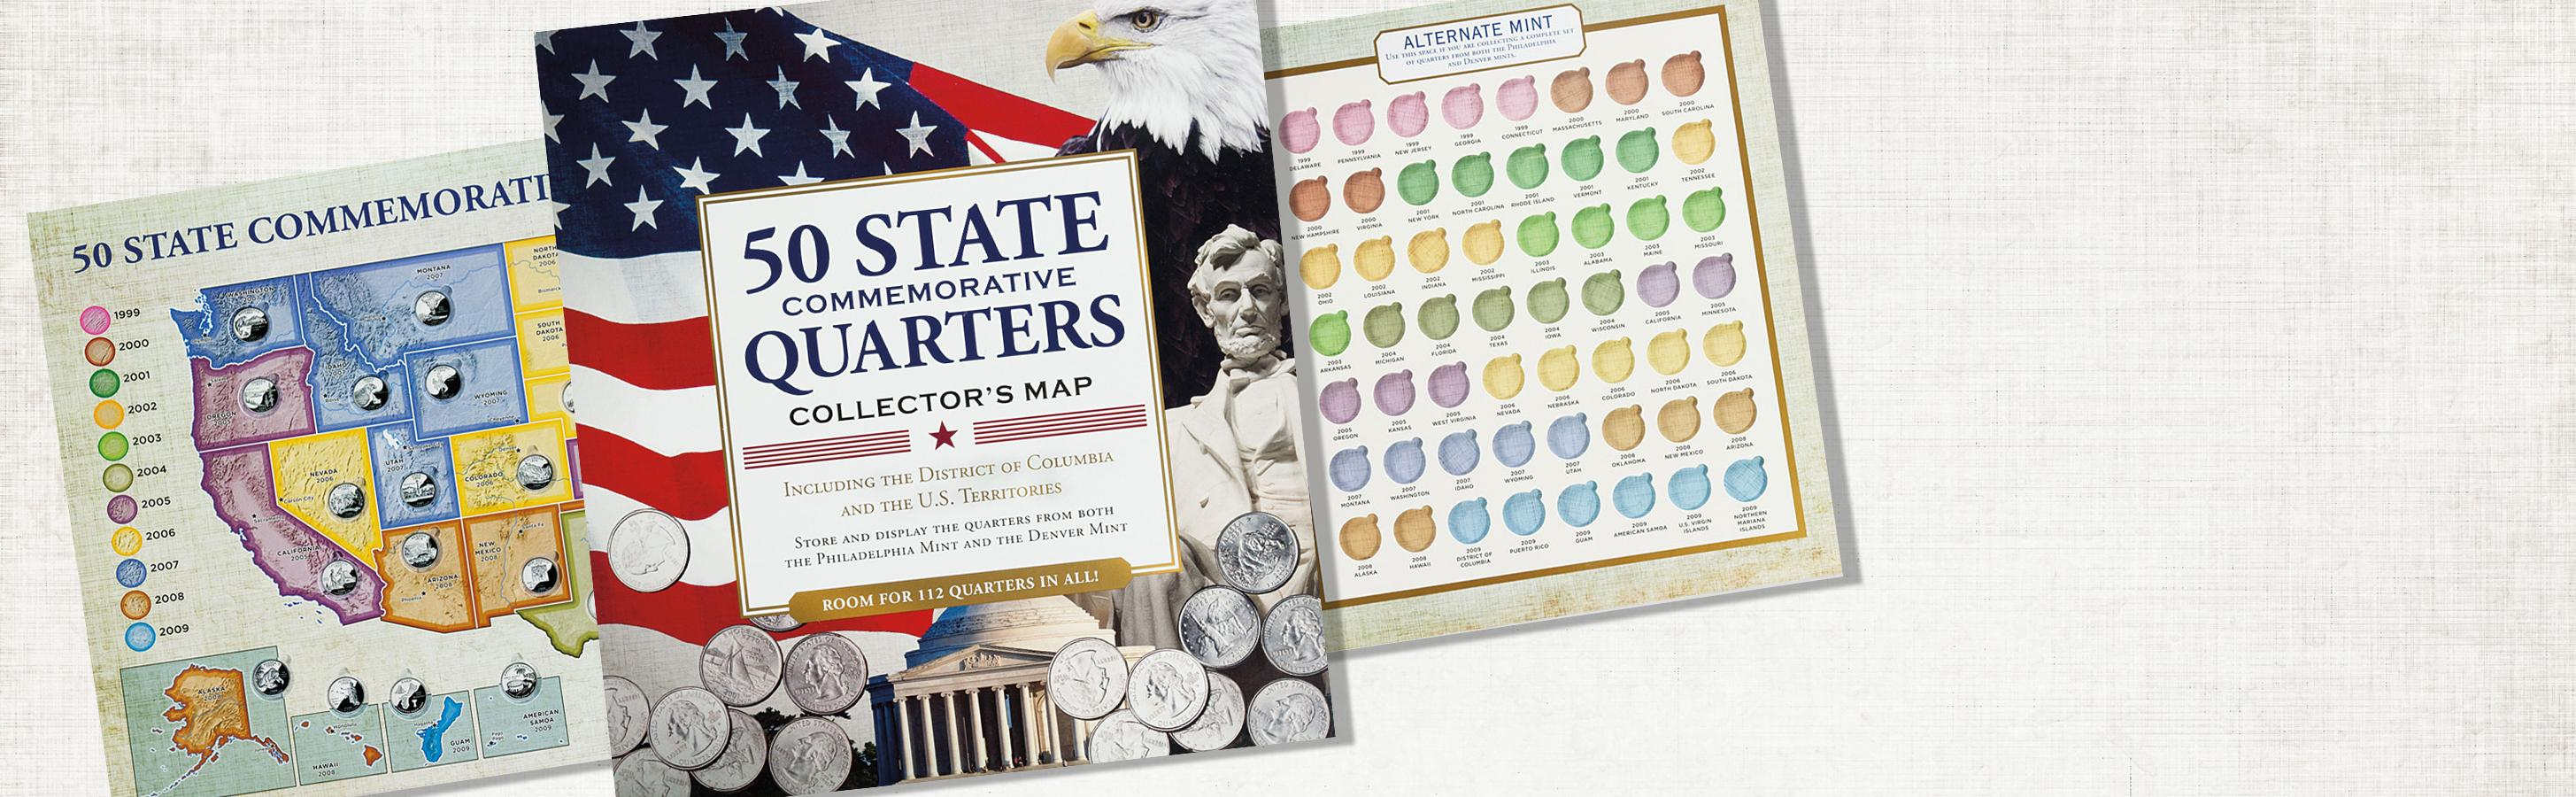 Amazoncom State Commemorative Quarters Collectors Map - Us quarter collector map